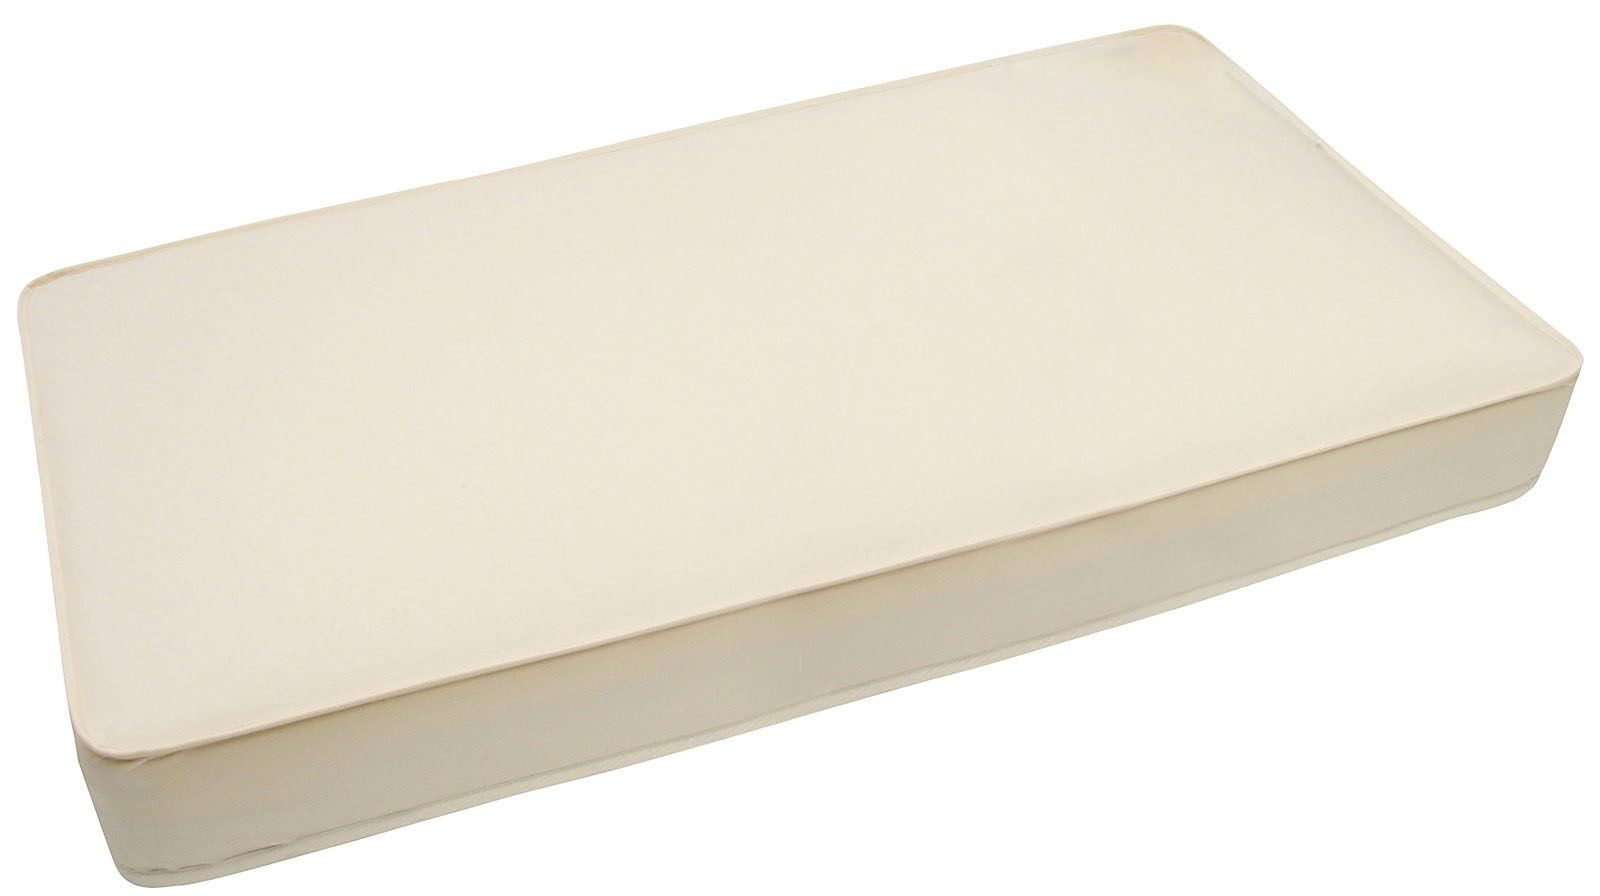 Cot Deluxe Mattress & Amicor Anit Allergen Cover